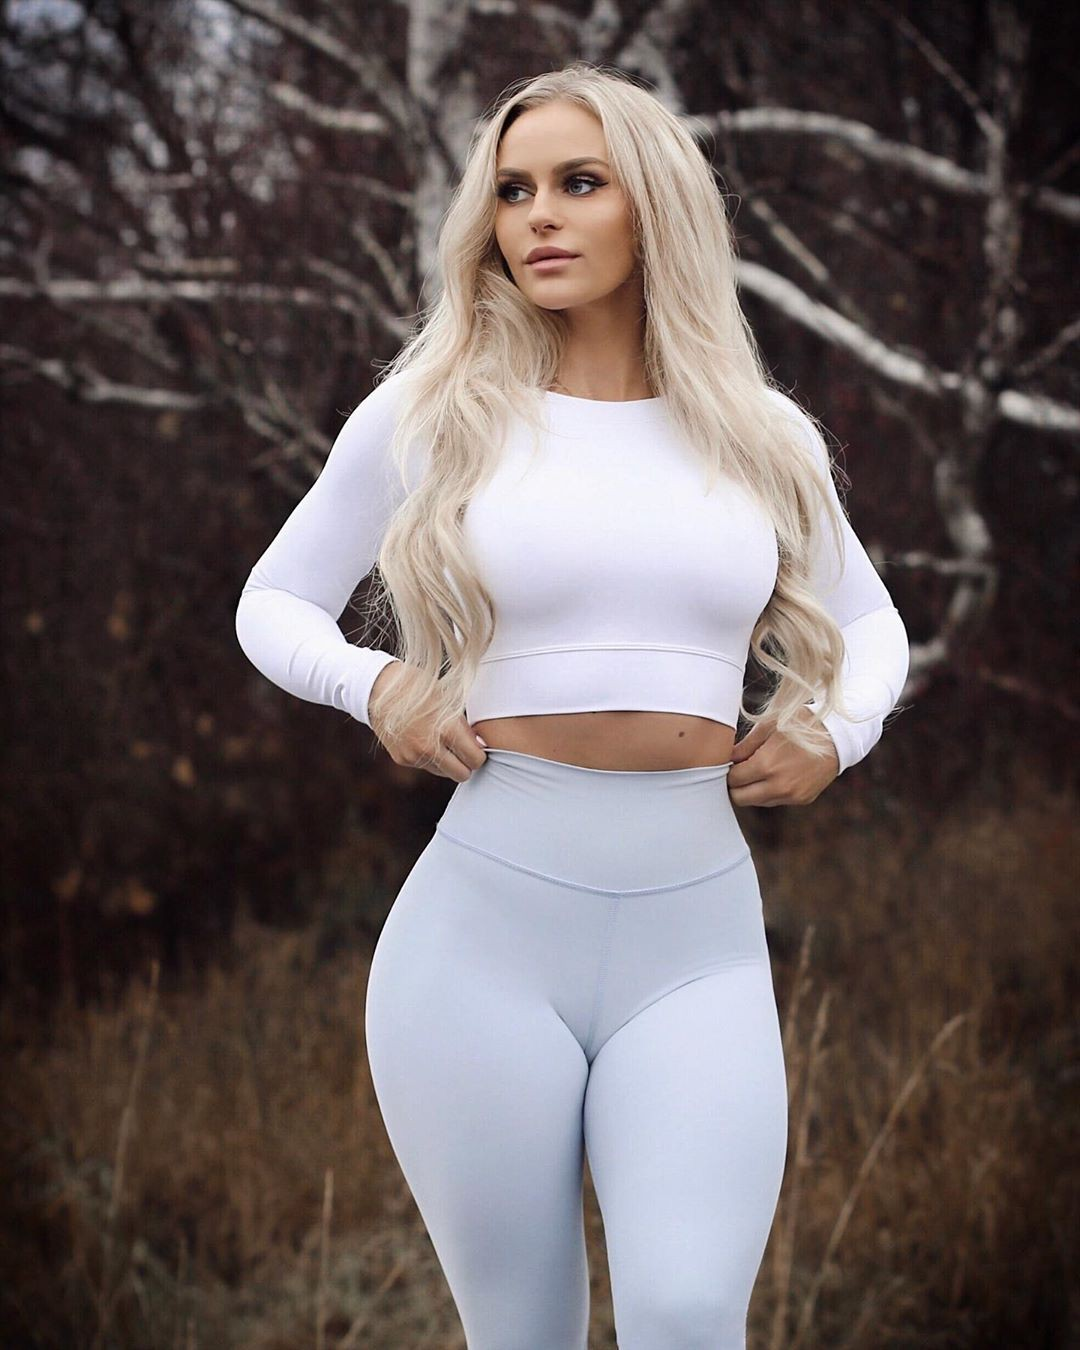 Womens active wear anna nystrom, Anna Nystrom